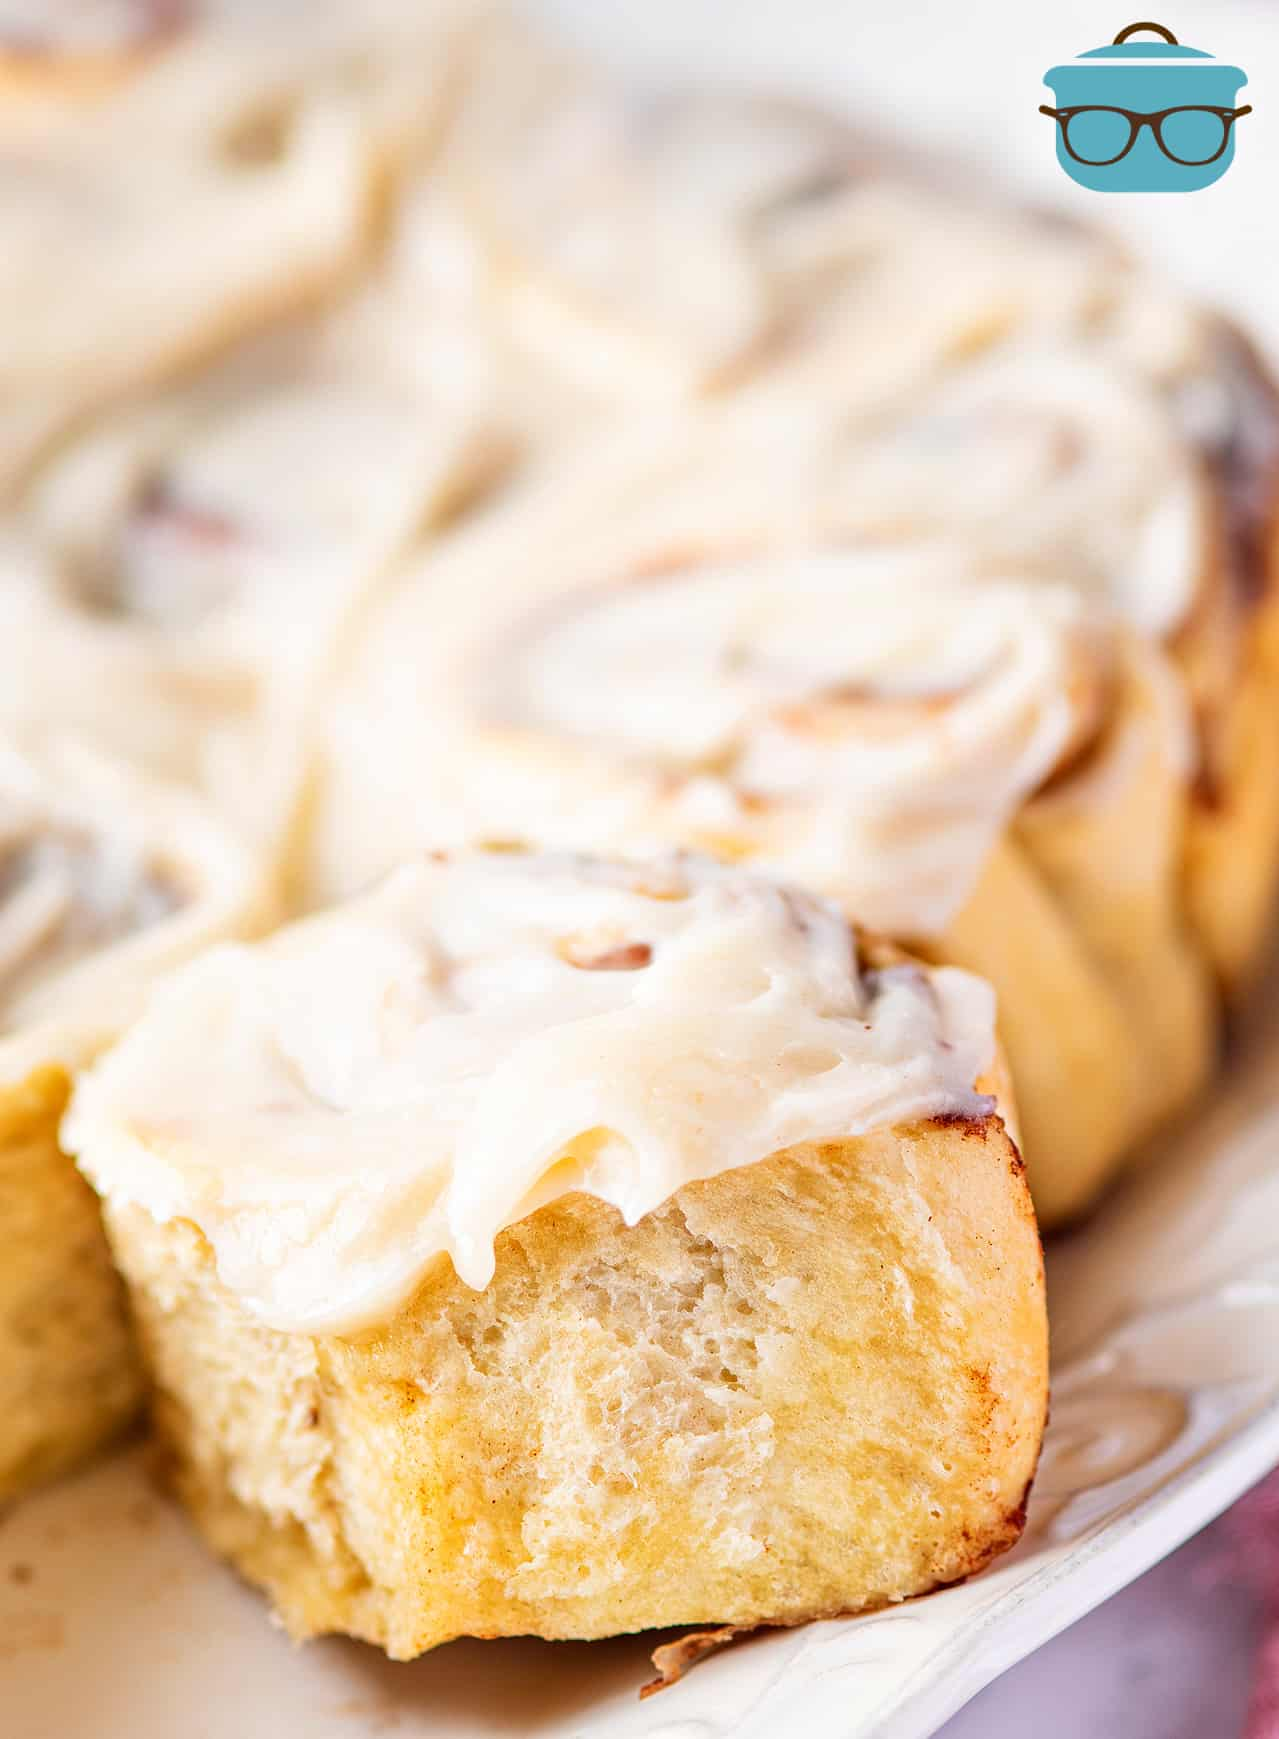 close up shot of cinnamon roll topped with cream cheese frosting on a white plate